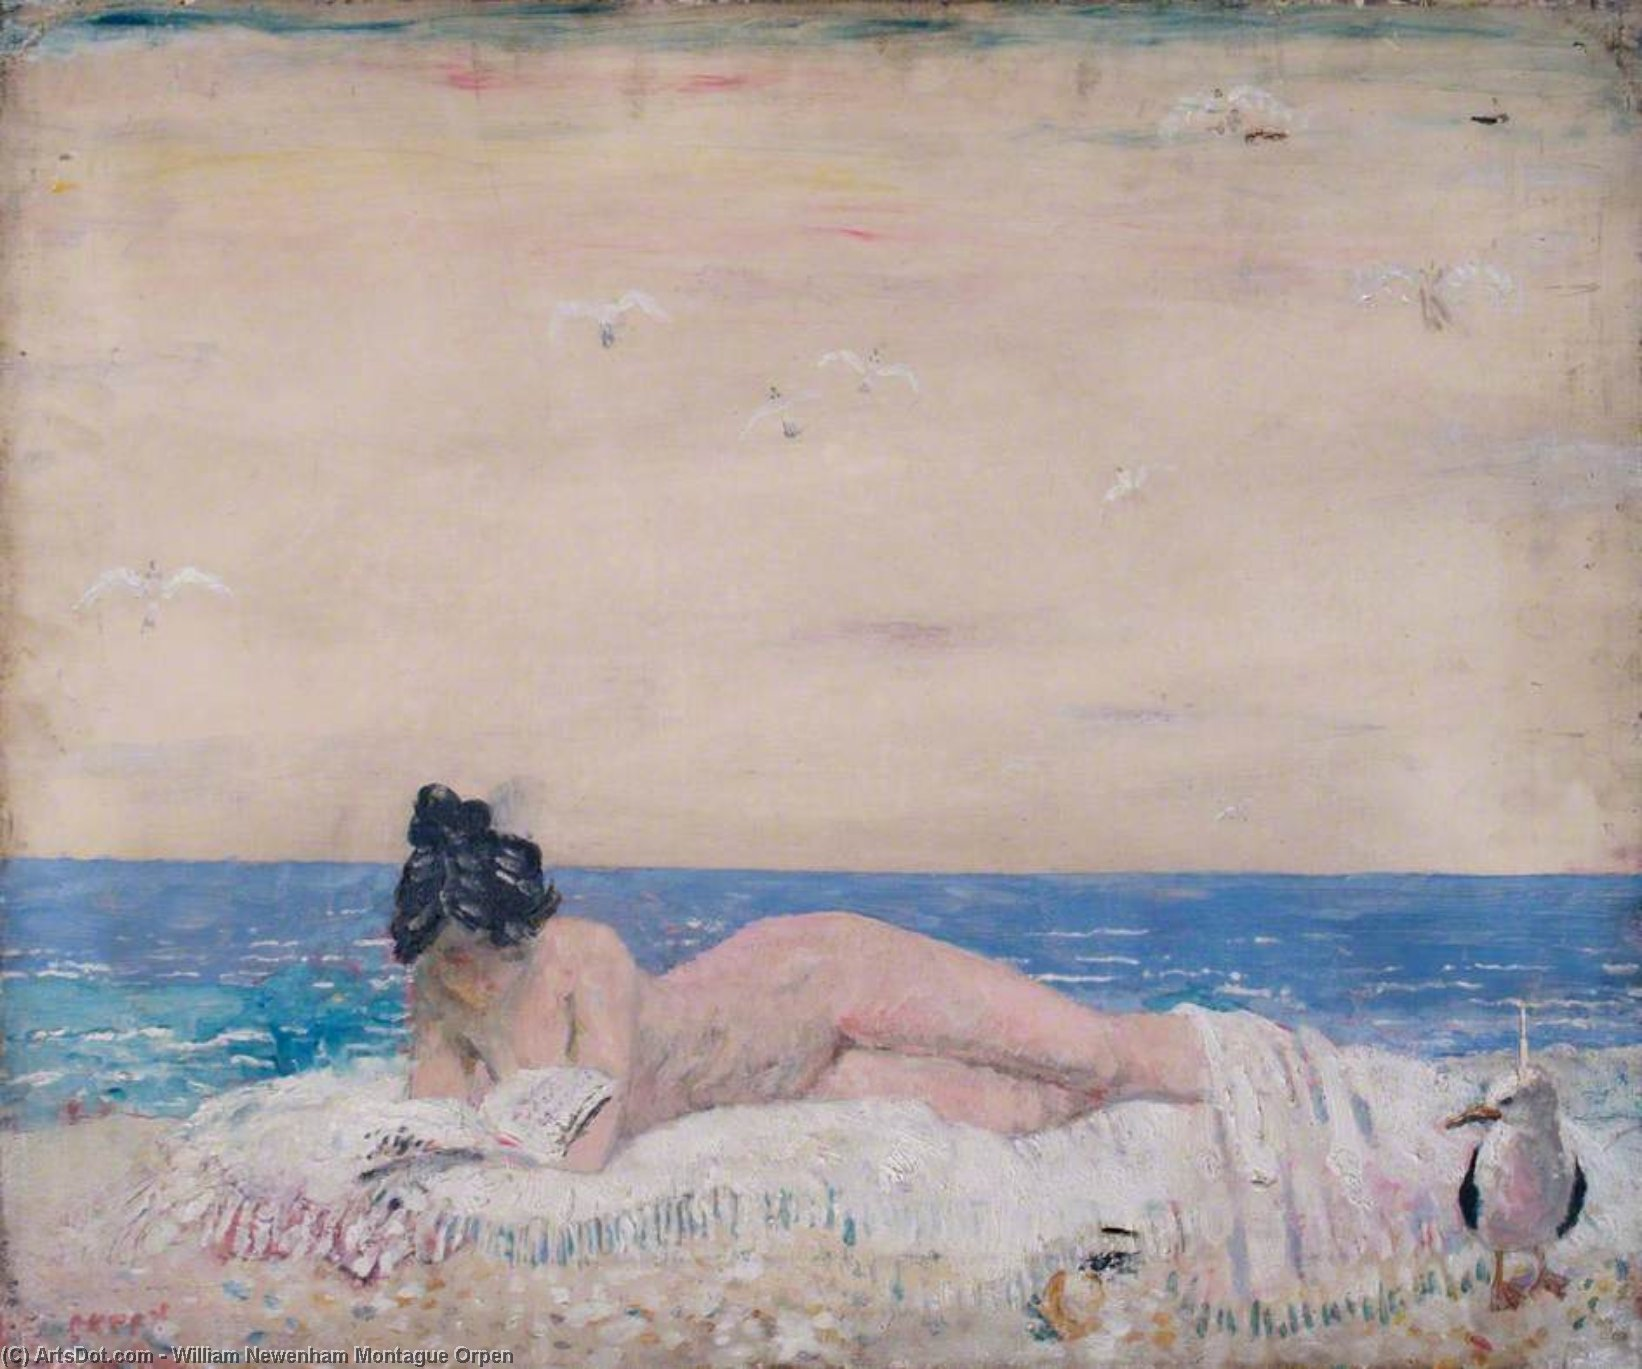 fêmea nua modelo  leitura  sobre  o  beira mar  por William Newenham Montague Orpen (1878-1931, Ireland)